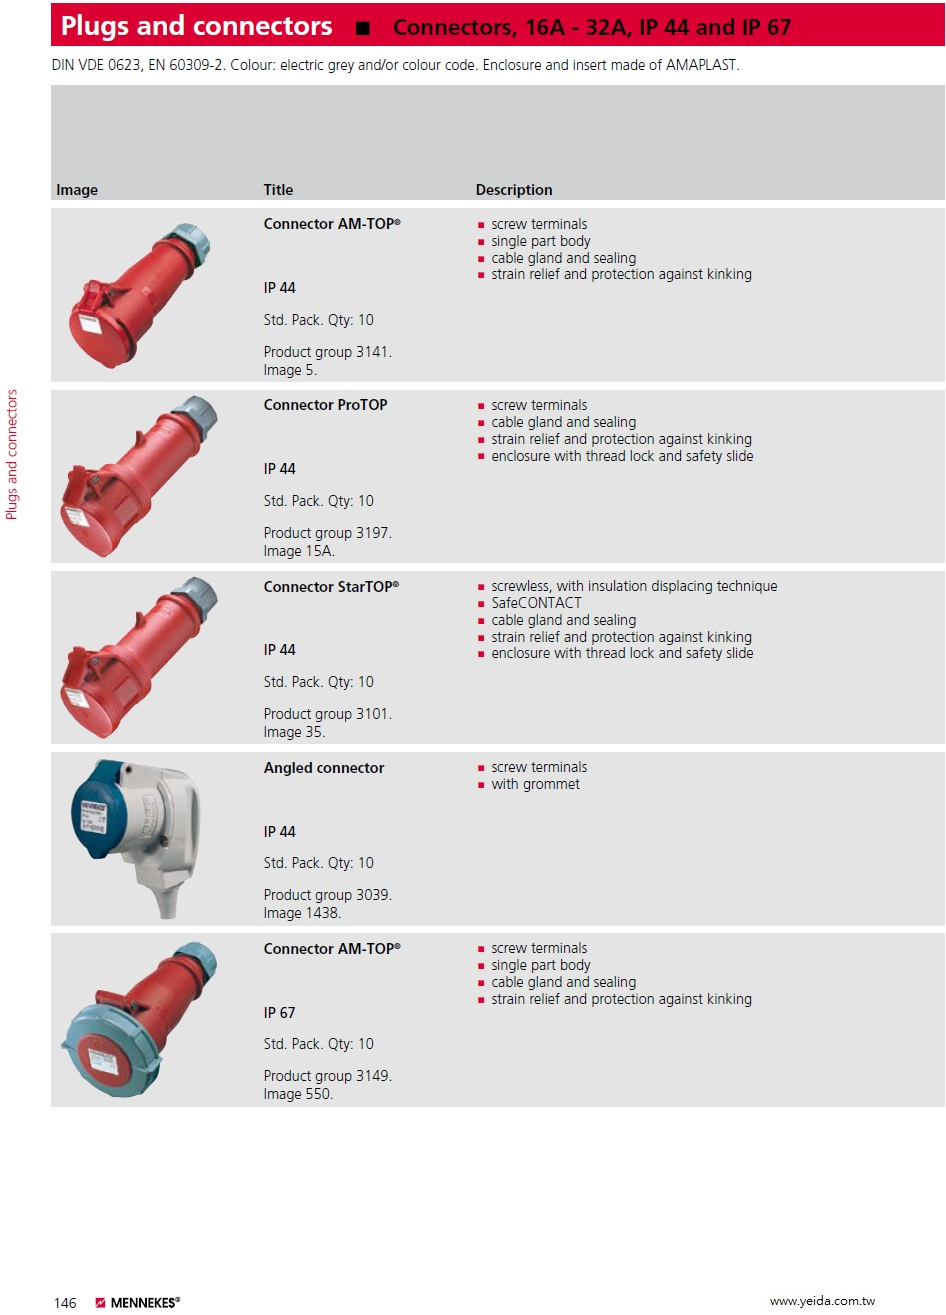 MENNEKES, Industrial Connectors, 16A - 32A, IP 44 and IP 67, DIN VDE 0623, EN 60309-2, 曼奈柯斯, 歐規工業級電線連接器產品圖